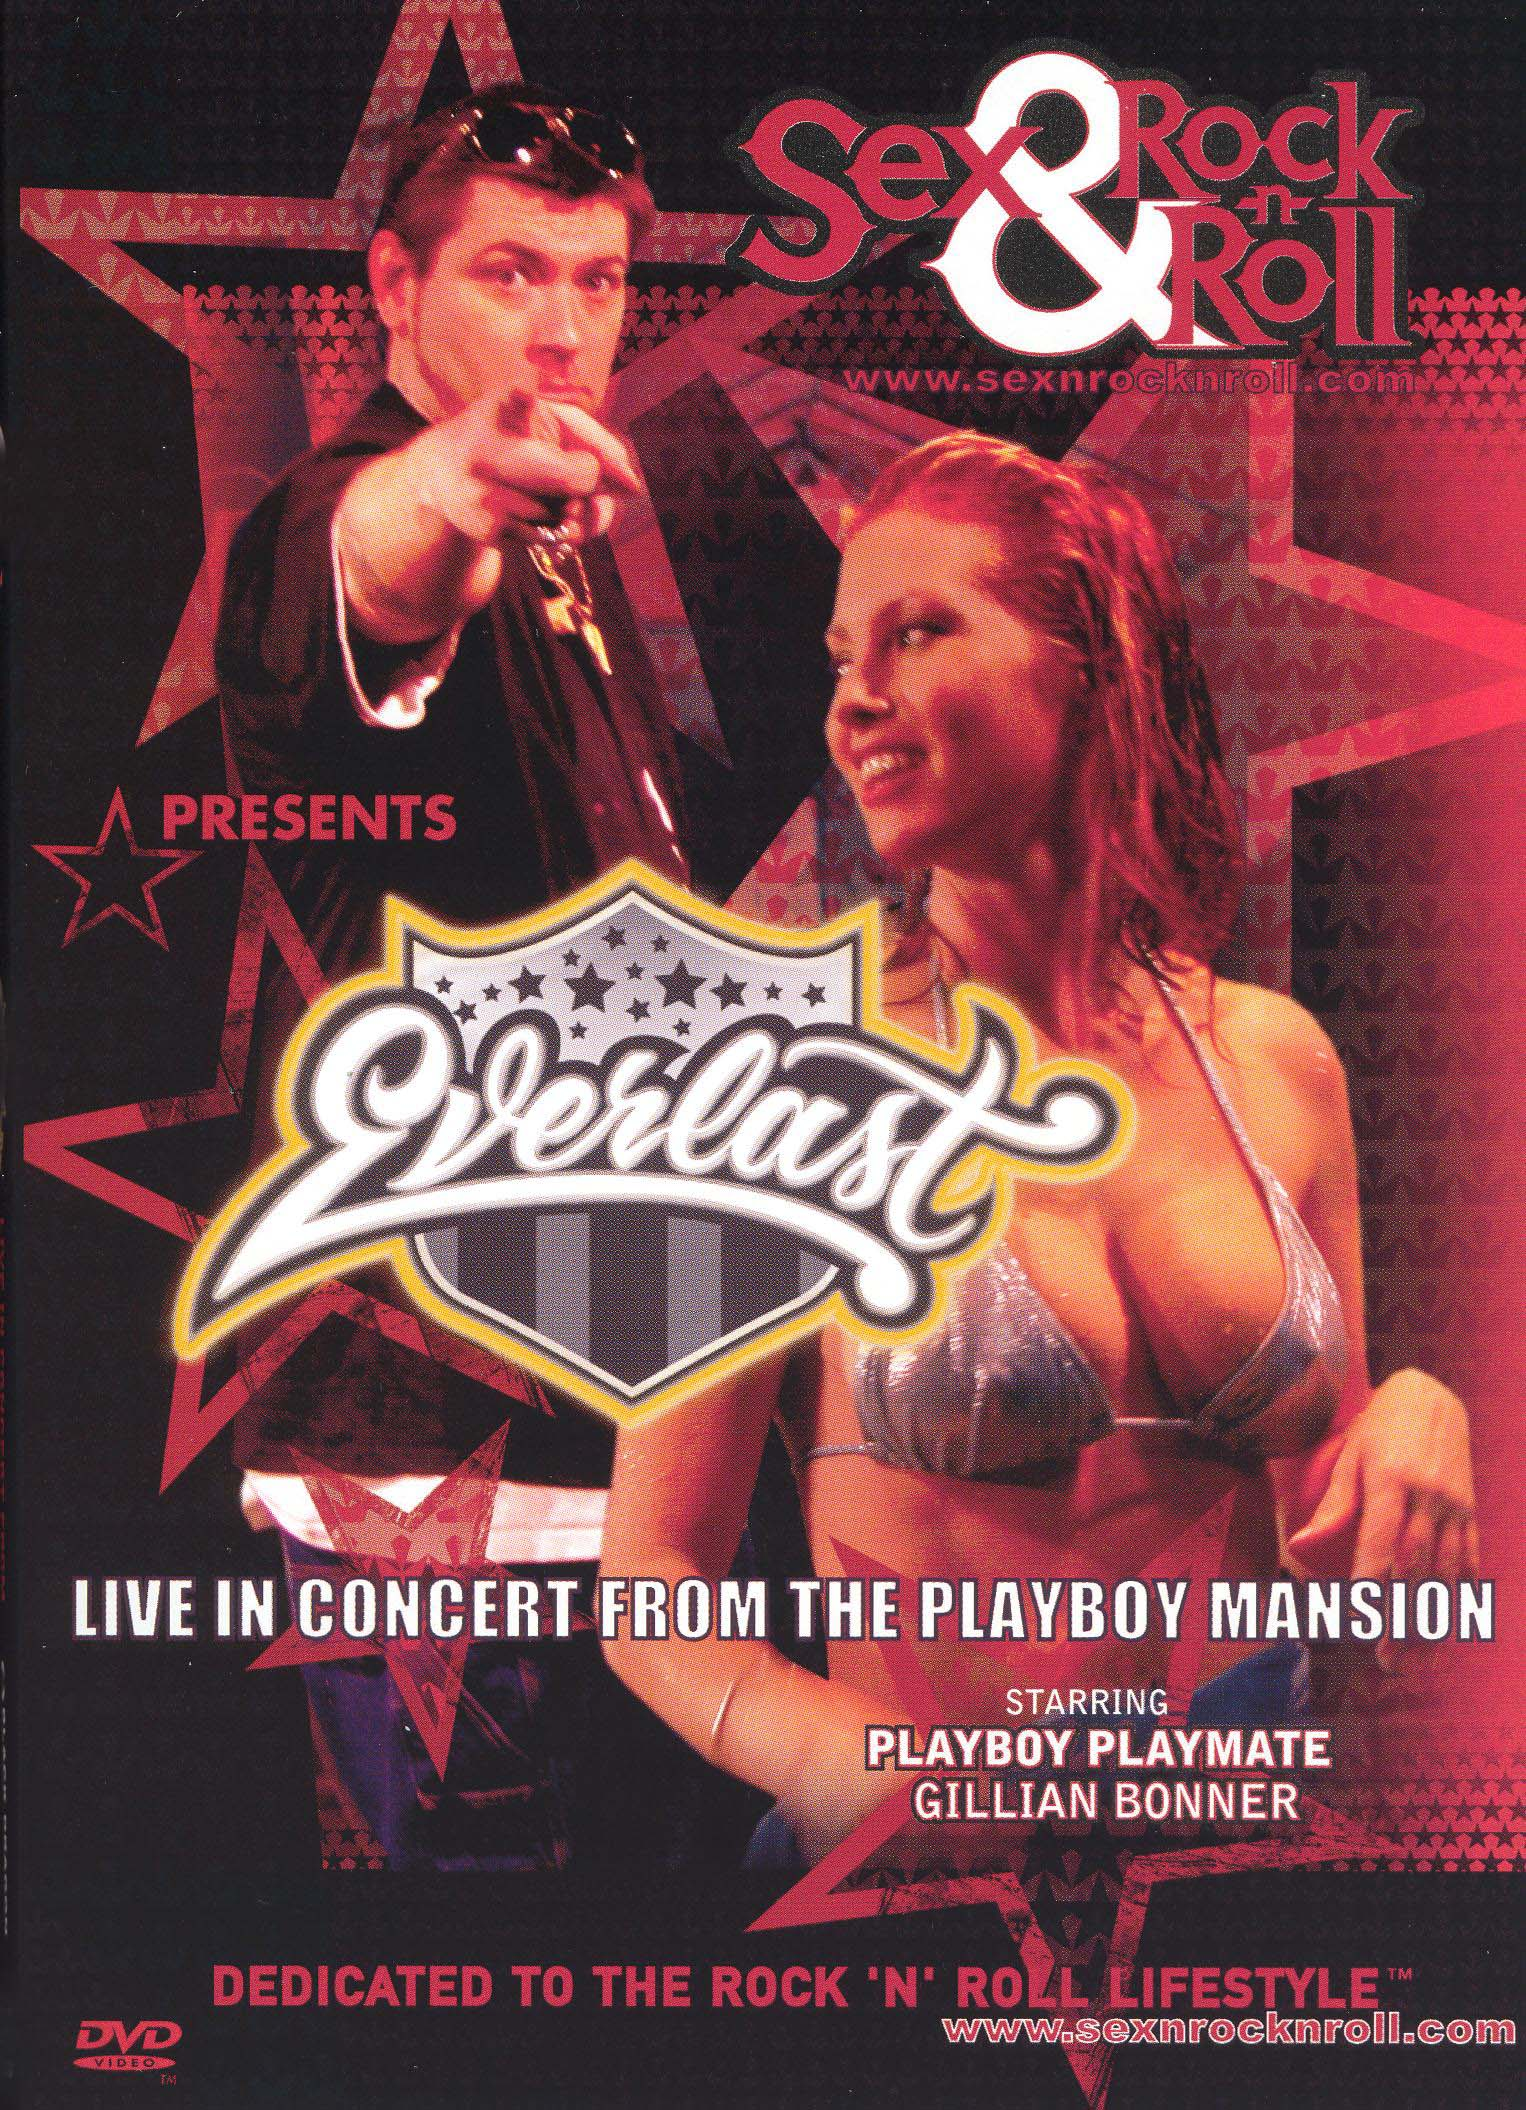 Sex & Rock-n-Roll Presents: Everlast - Live in Concert from the Playboy Mansion